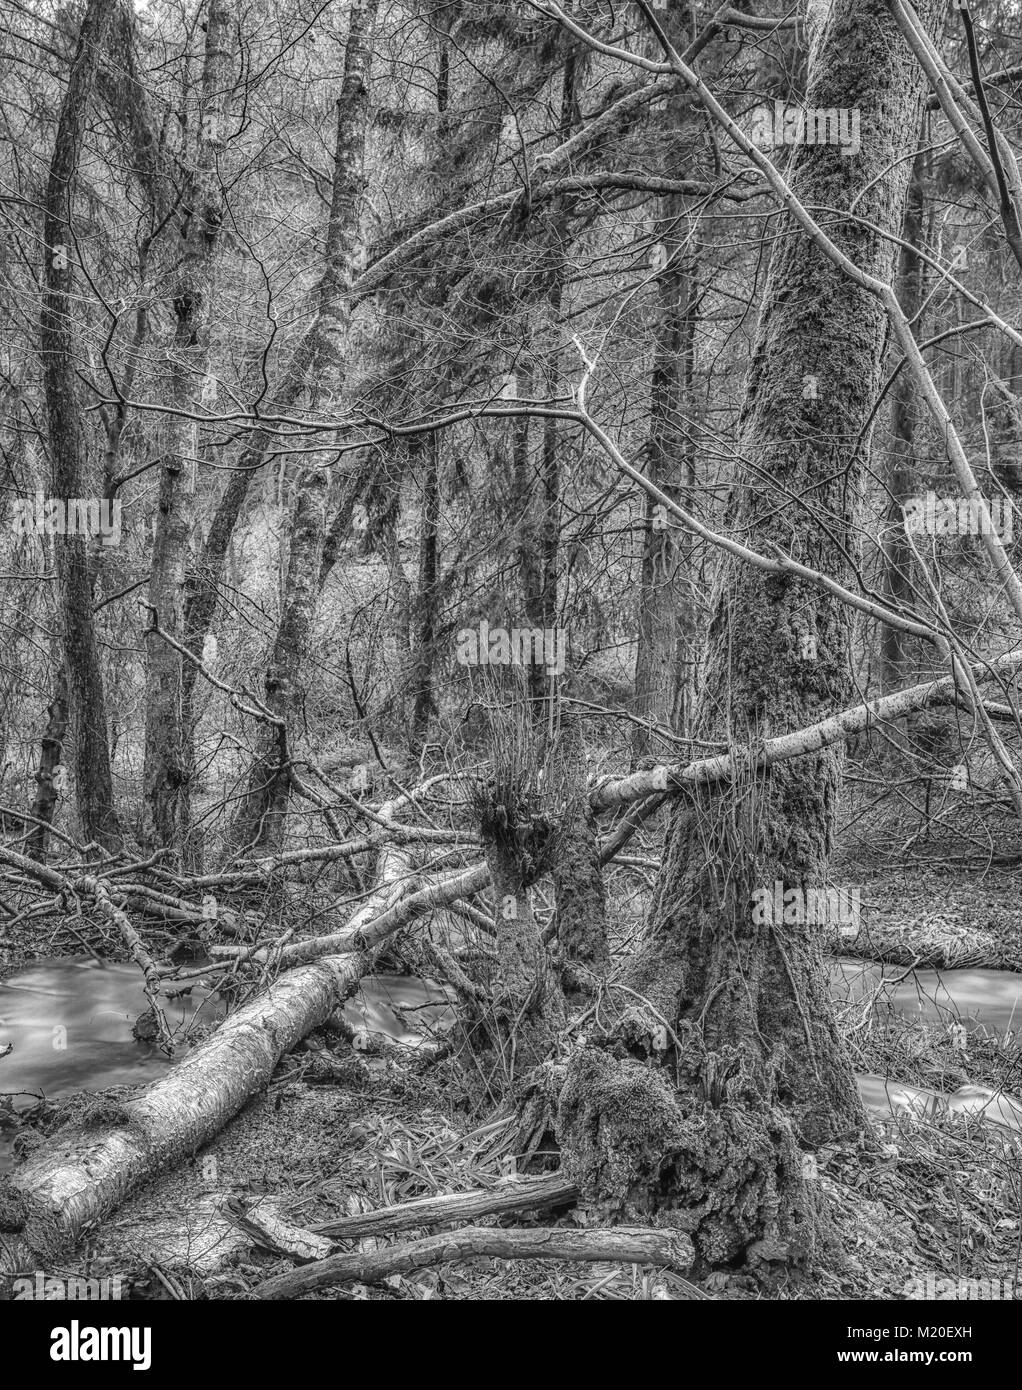 Monochrome long exposure photography of a wild untouched forest with fallen trees. moss,undergrowth,fern,grass and Stock Photo